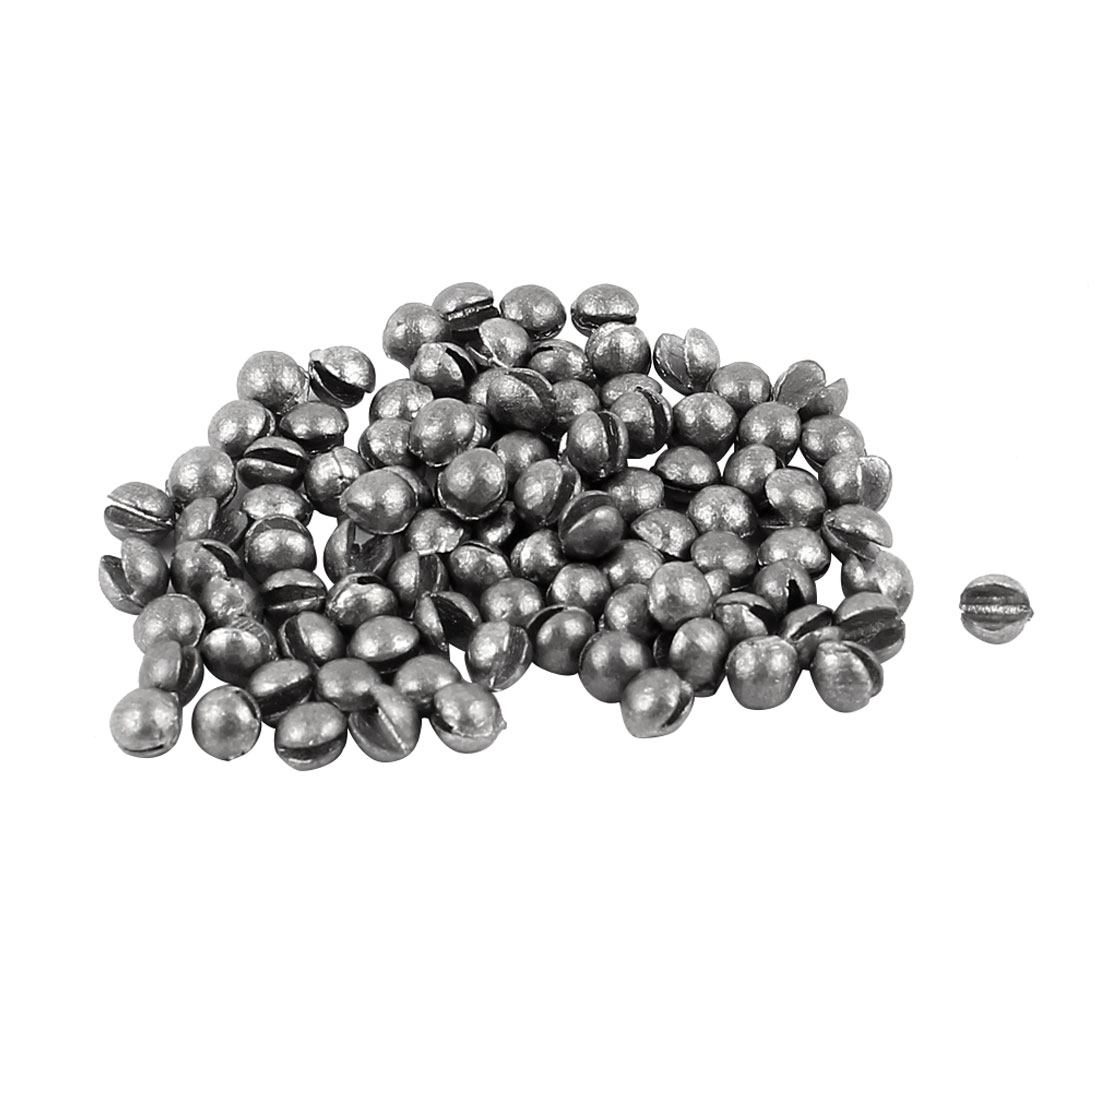 Freshwater Round Shape Lead Split Shots Fishing Sinkers 3.5mm Dia 100pcs 0.5g Per Piecs